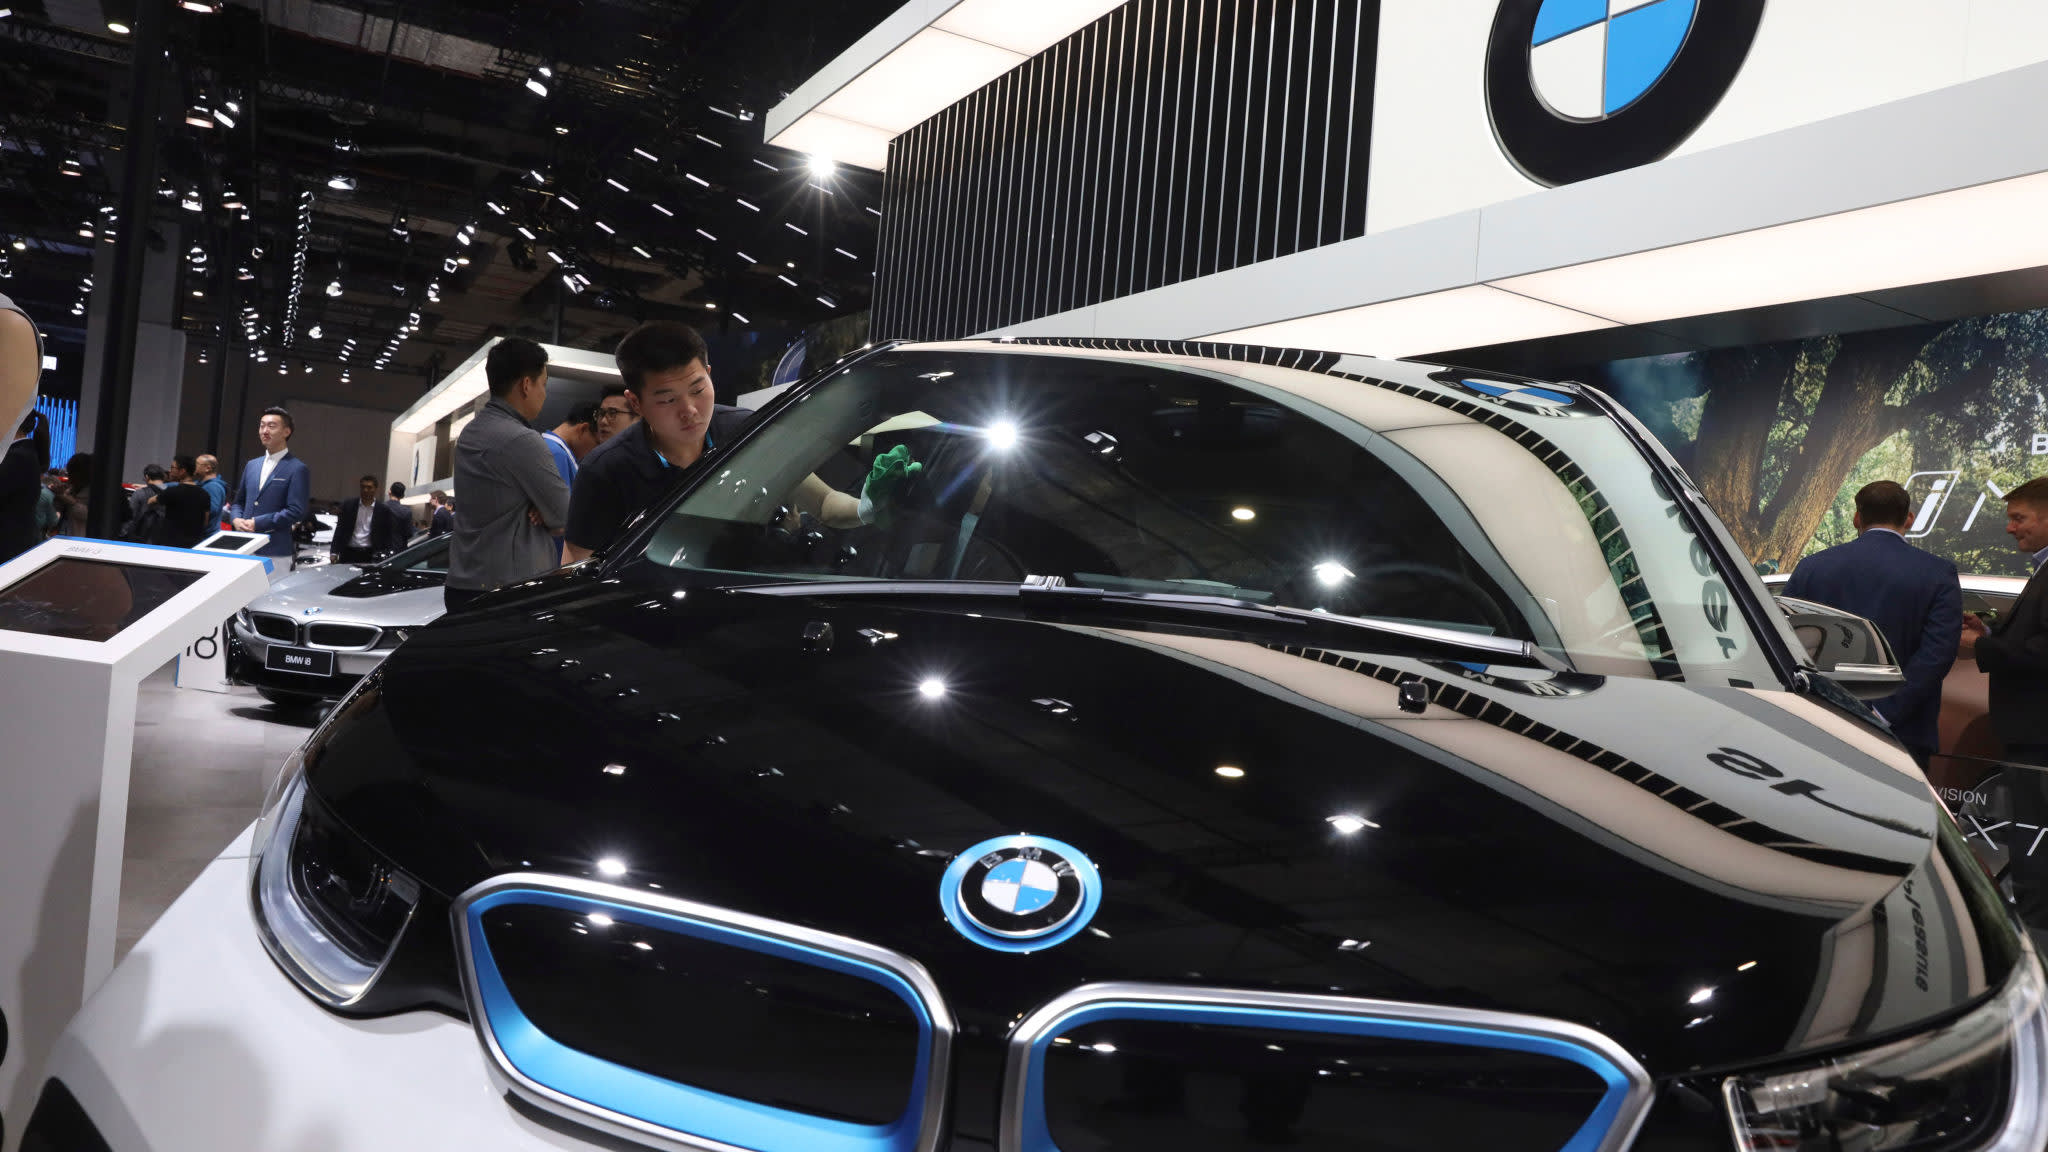 BMW records sector-leading margins as sales remain strong